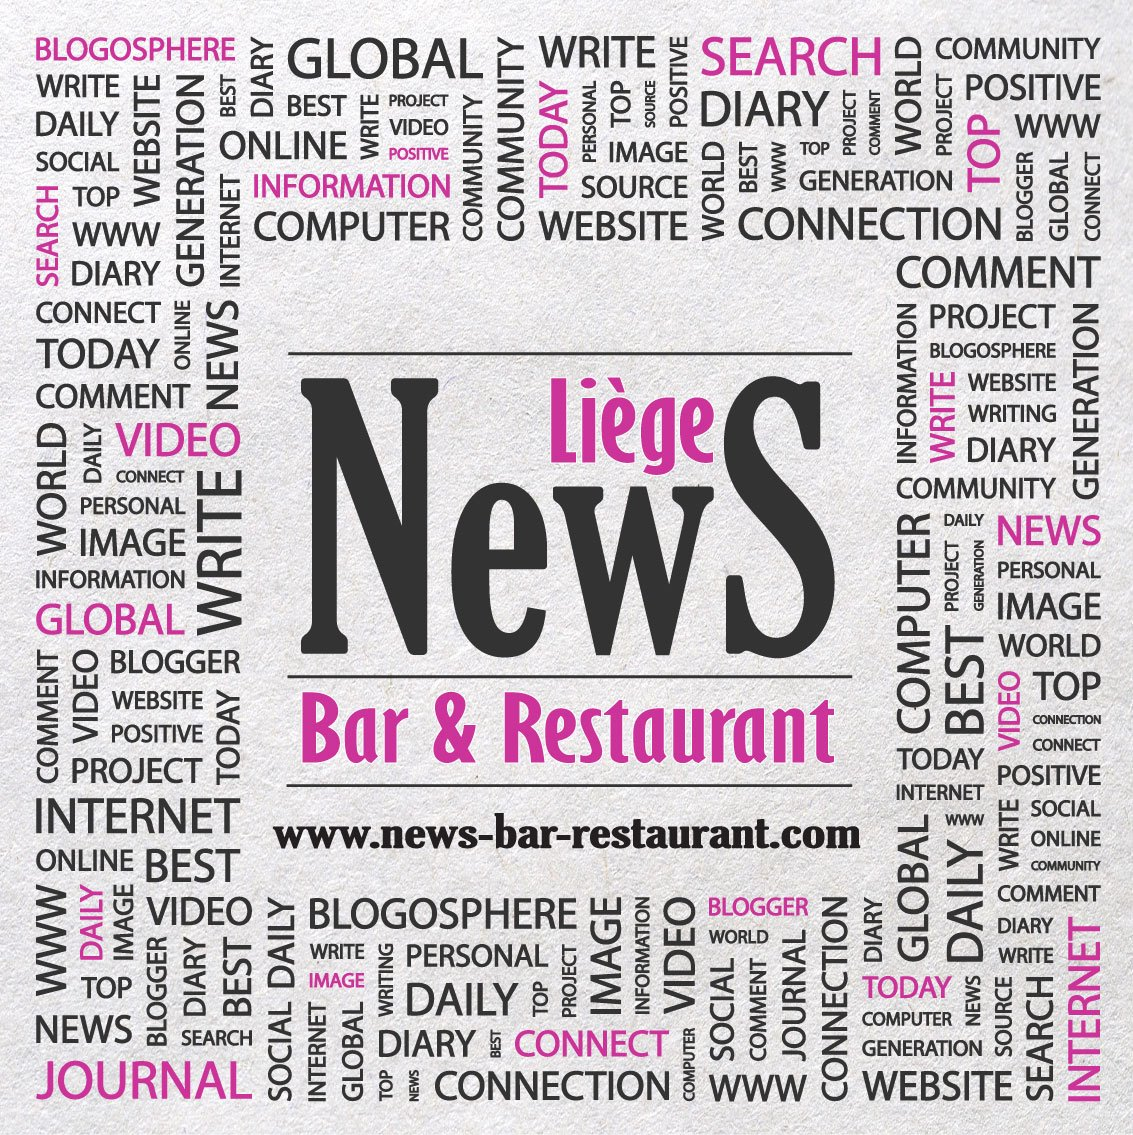 NEWS BAR & RESTAURANT